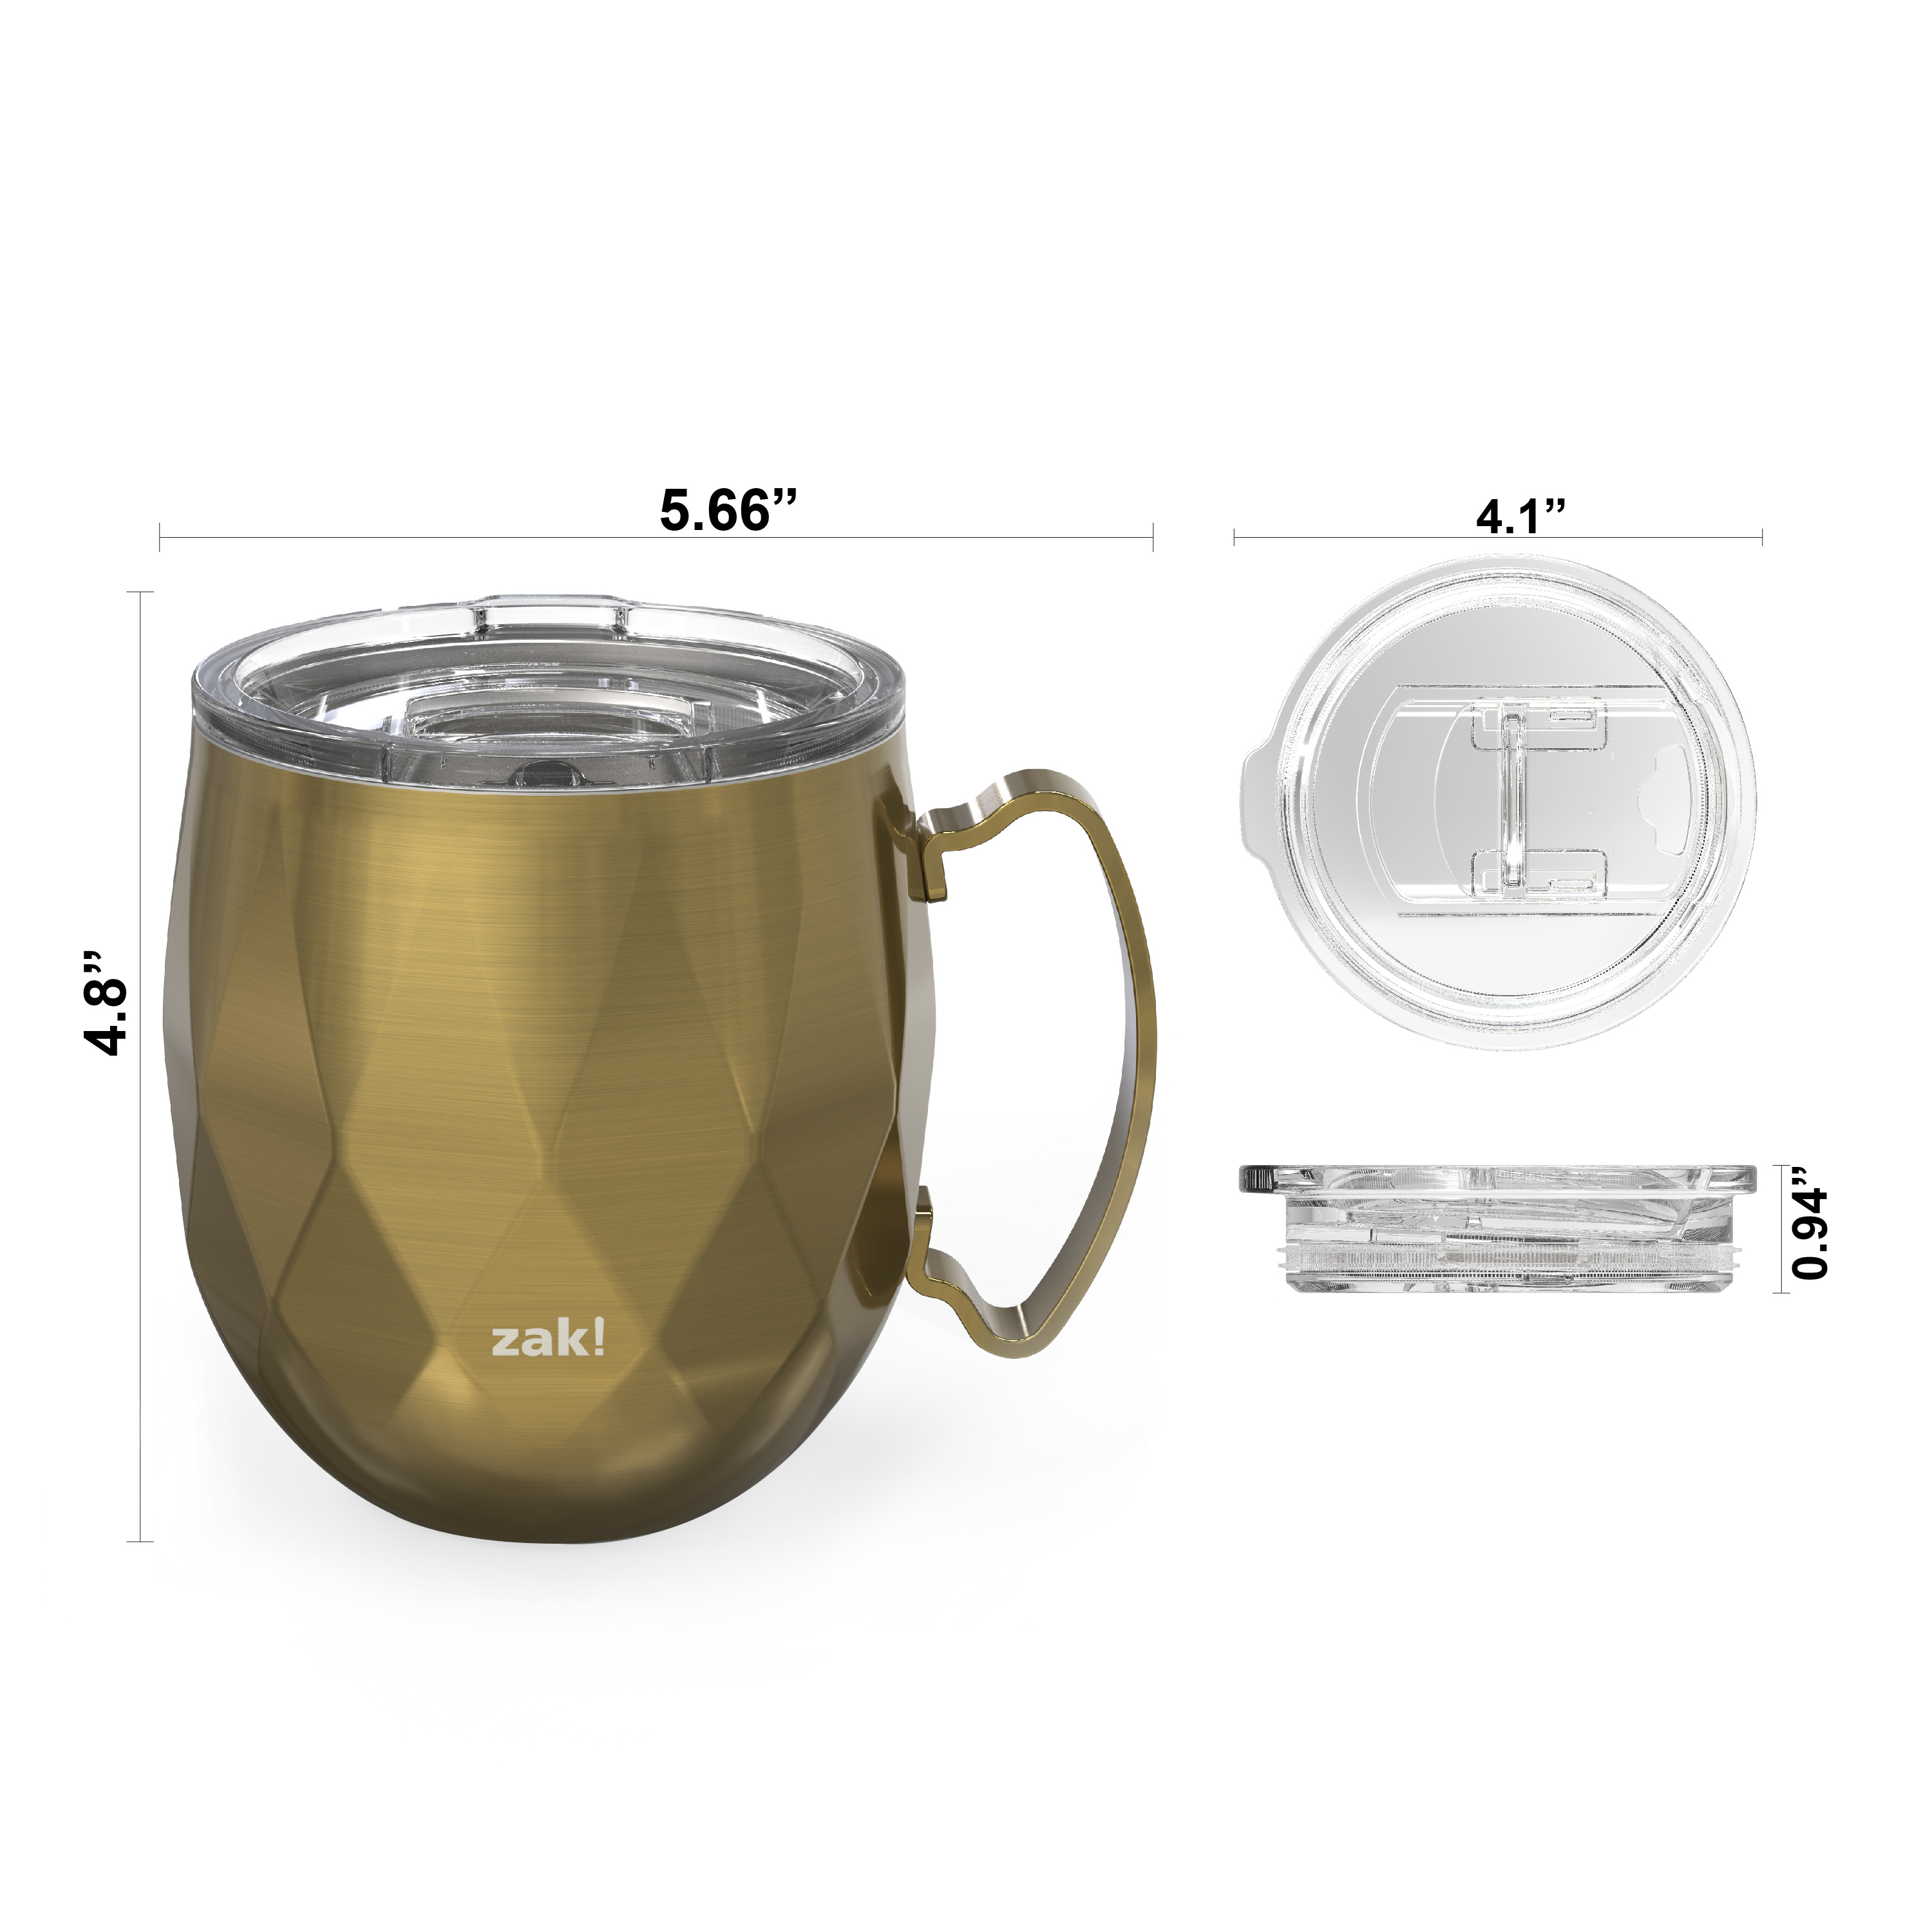 Fractal 19 ounce Vacuum Insulated Stainless Steel Mule Mug, Light Gold slideshow image 10